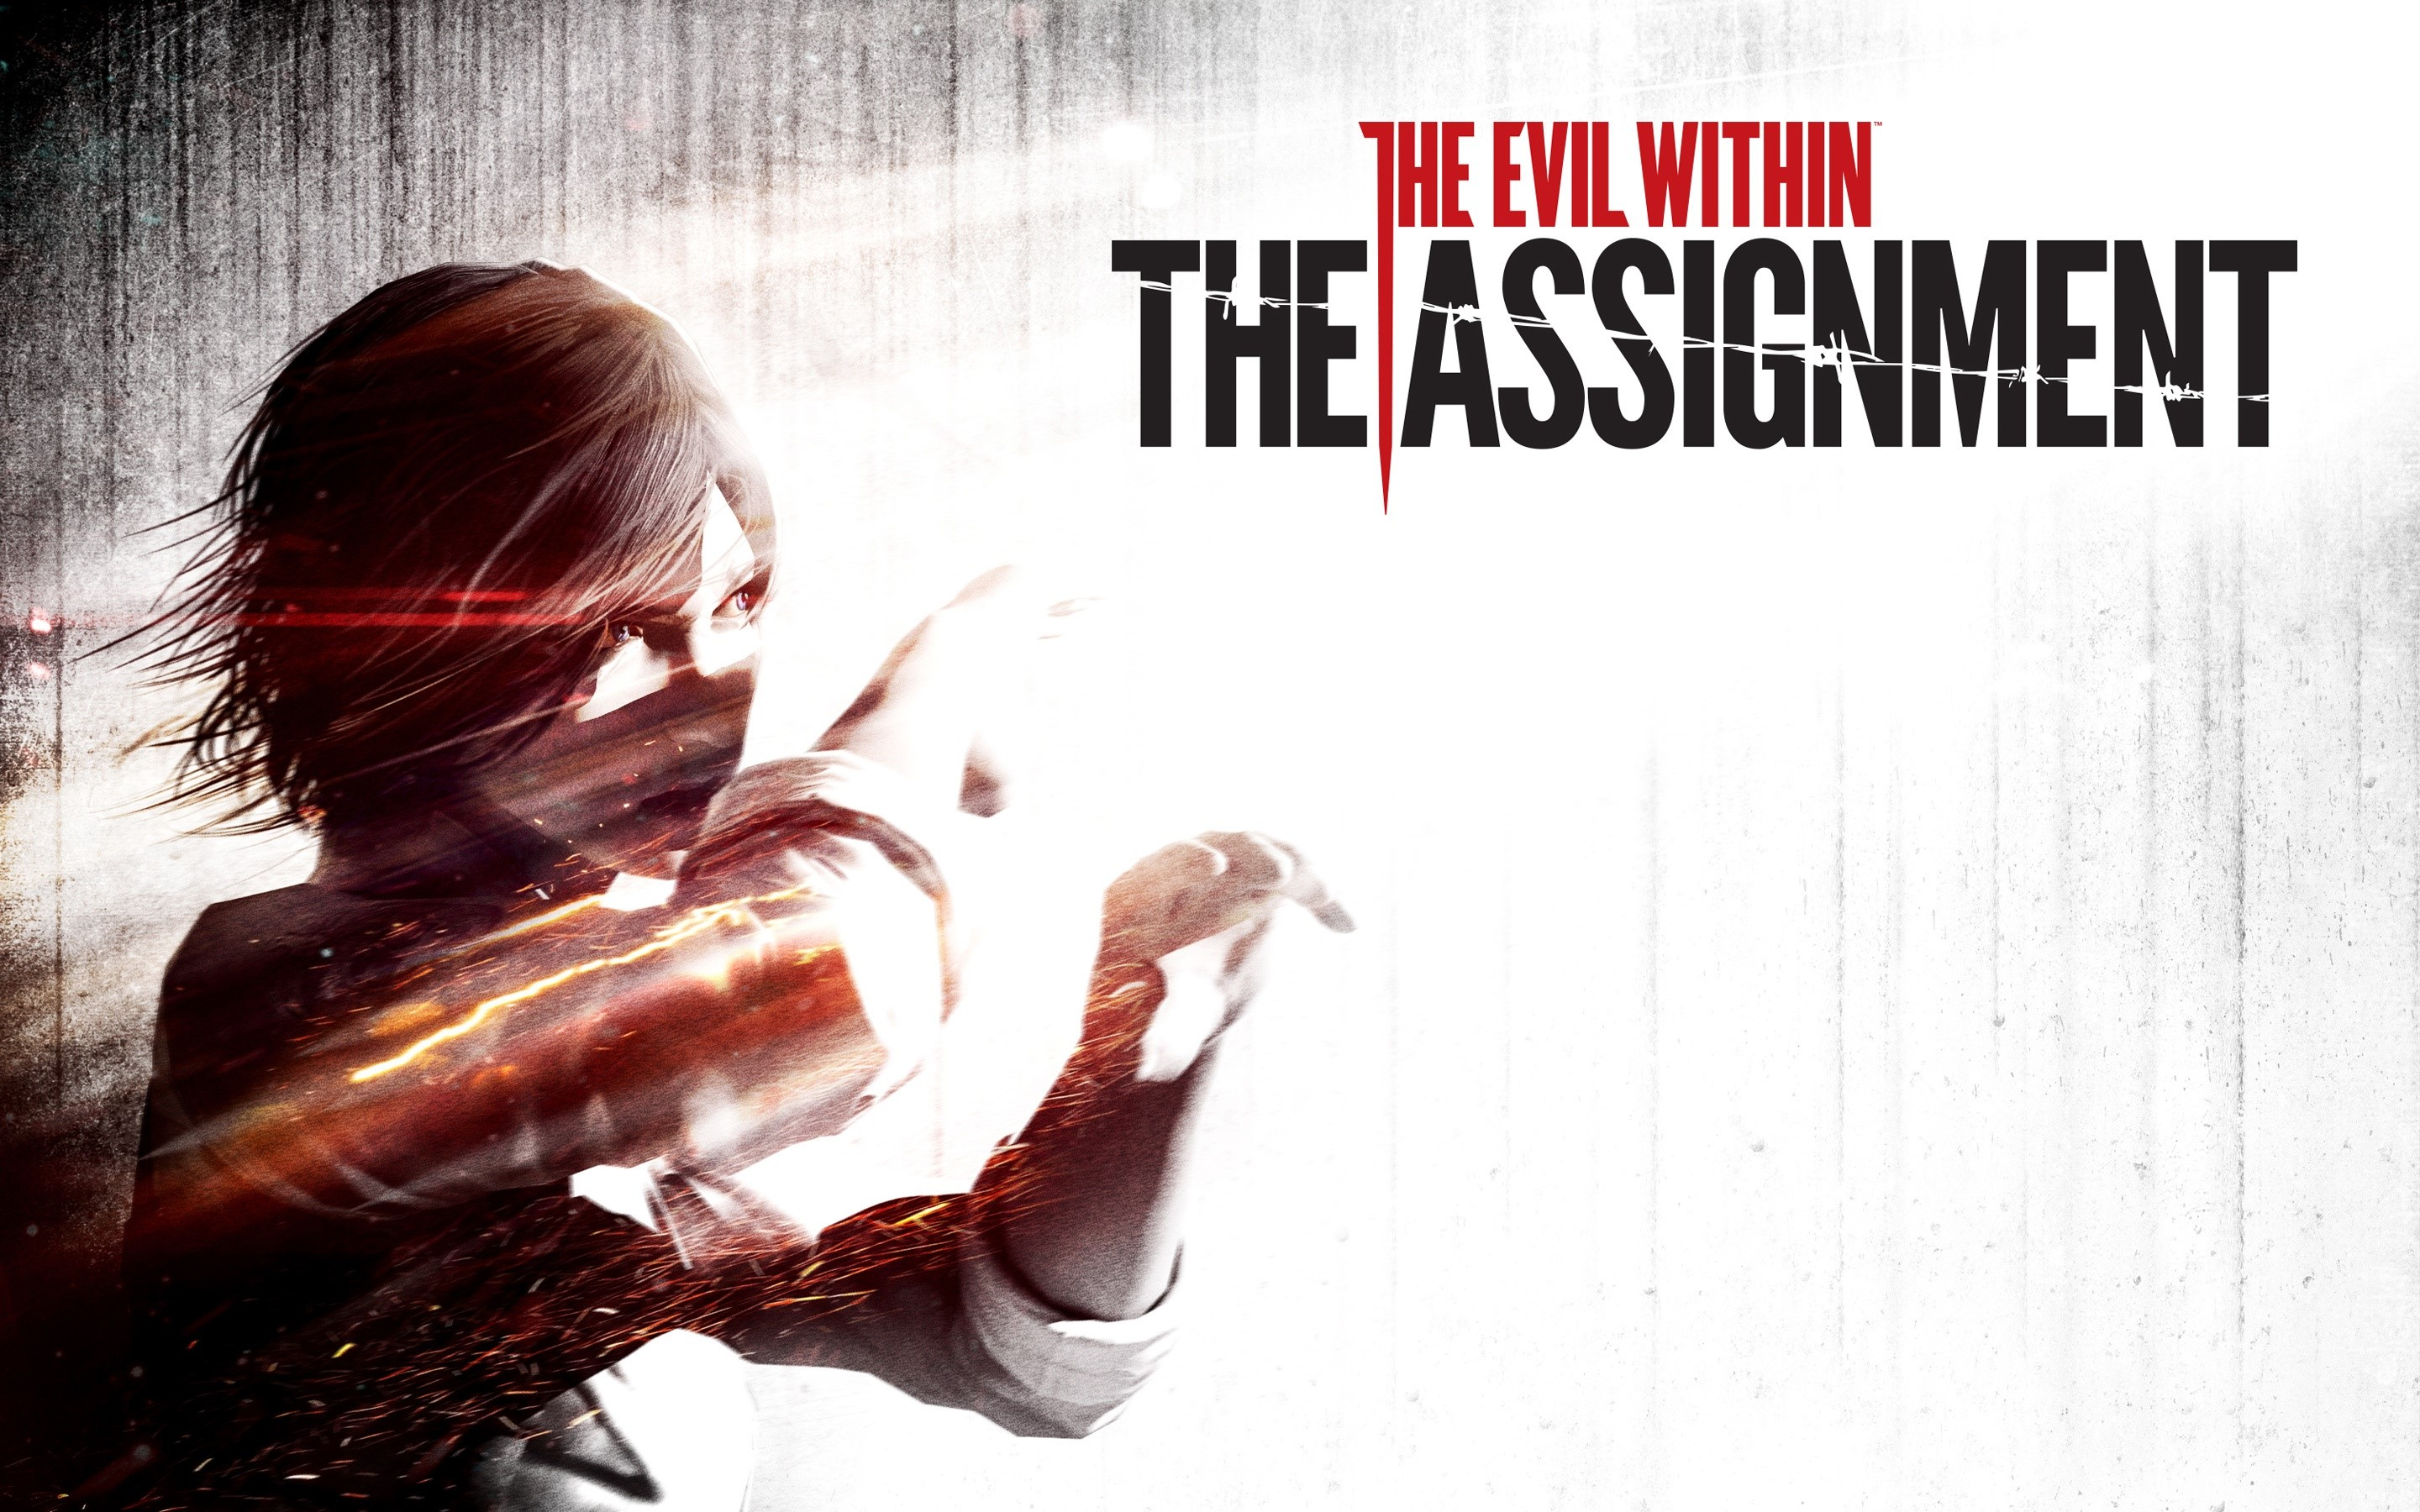 Wallpaper The evil within the assignment